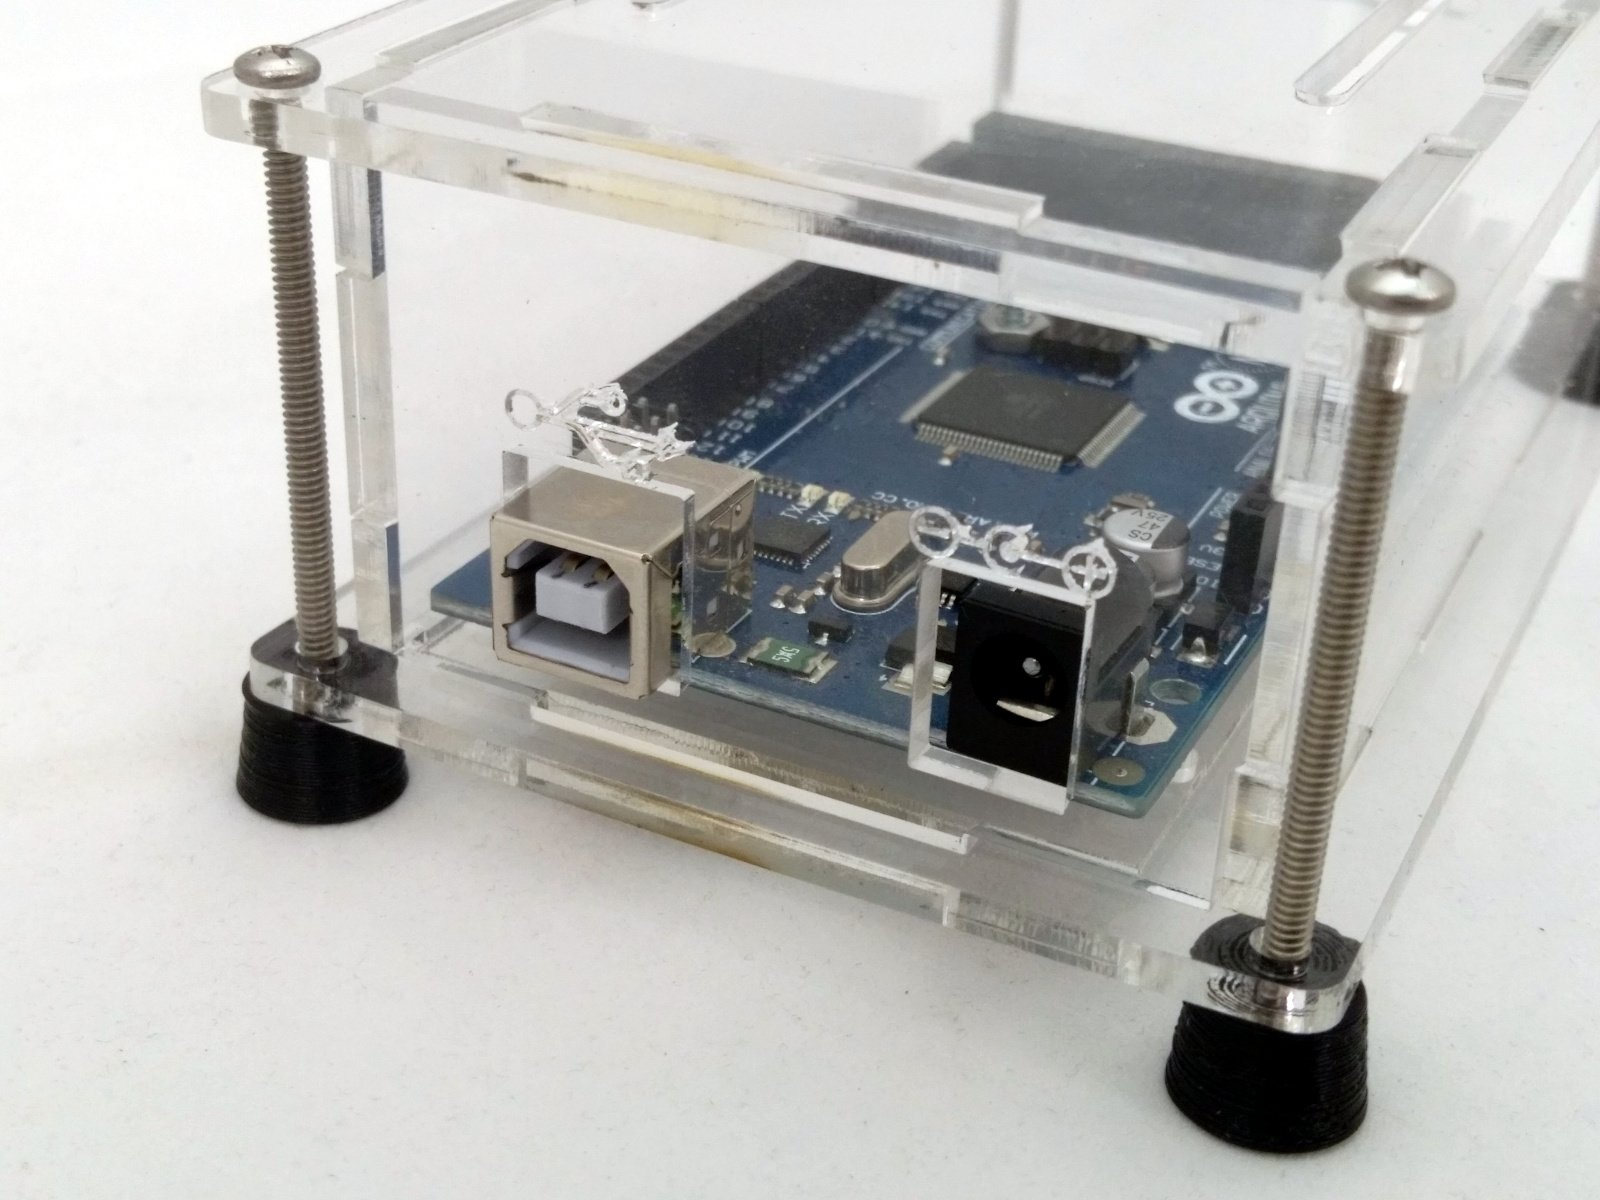 Acrylic enclosure kit for arduino mega from mjrice on tindie